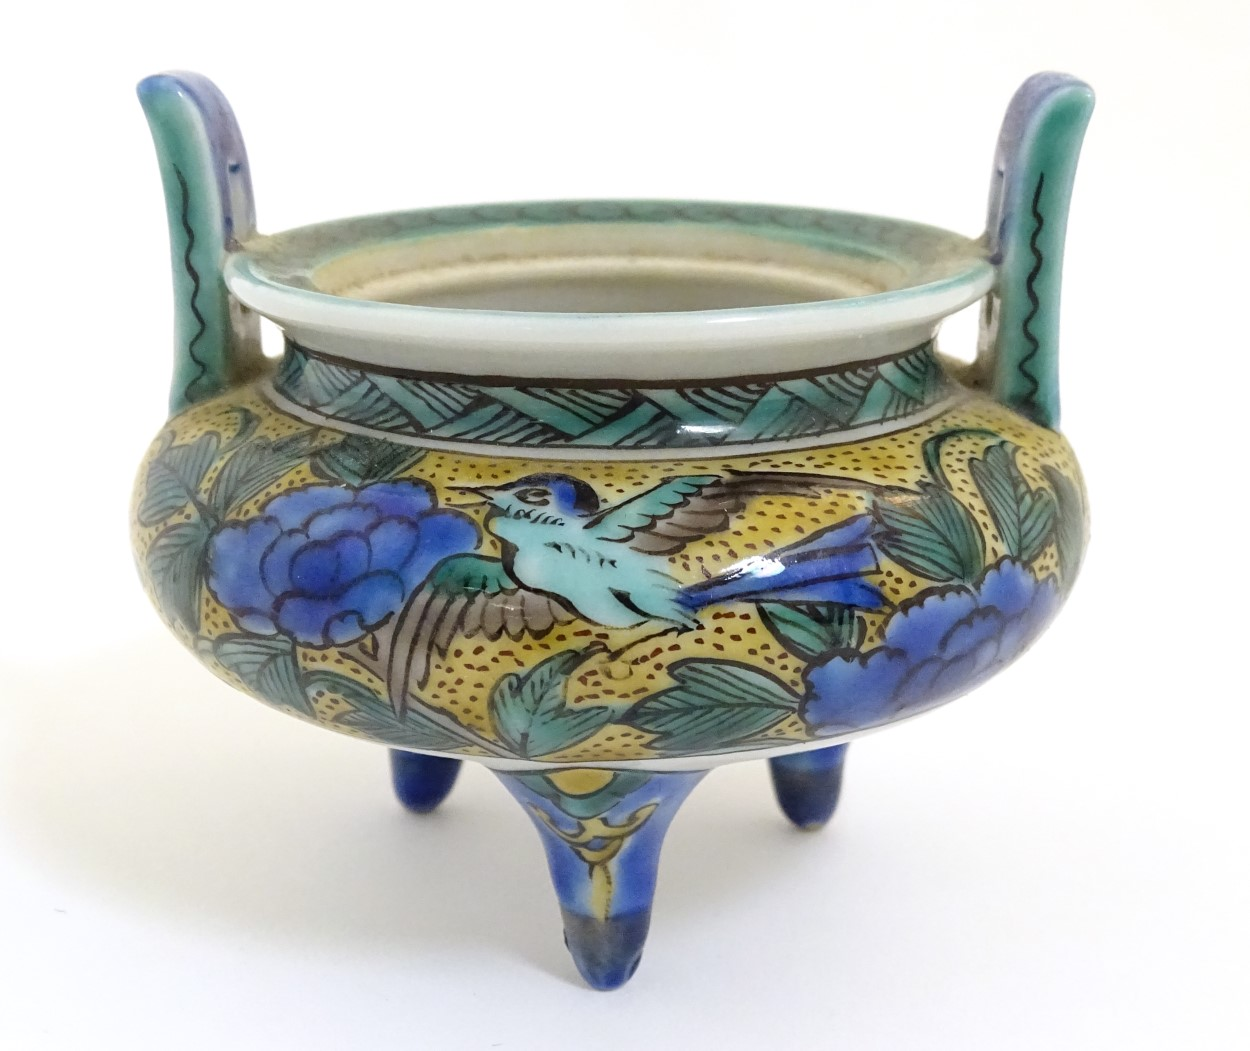 Lot 25 - A Chinese three legged, two handled censer, decorated with a bird and flowers.